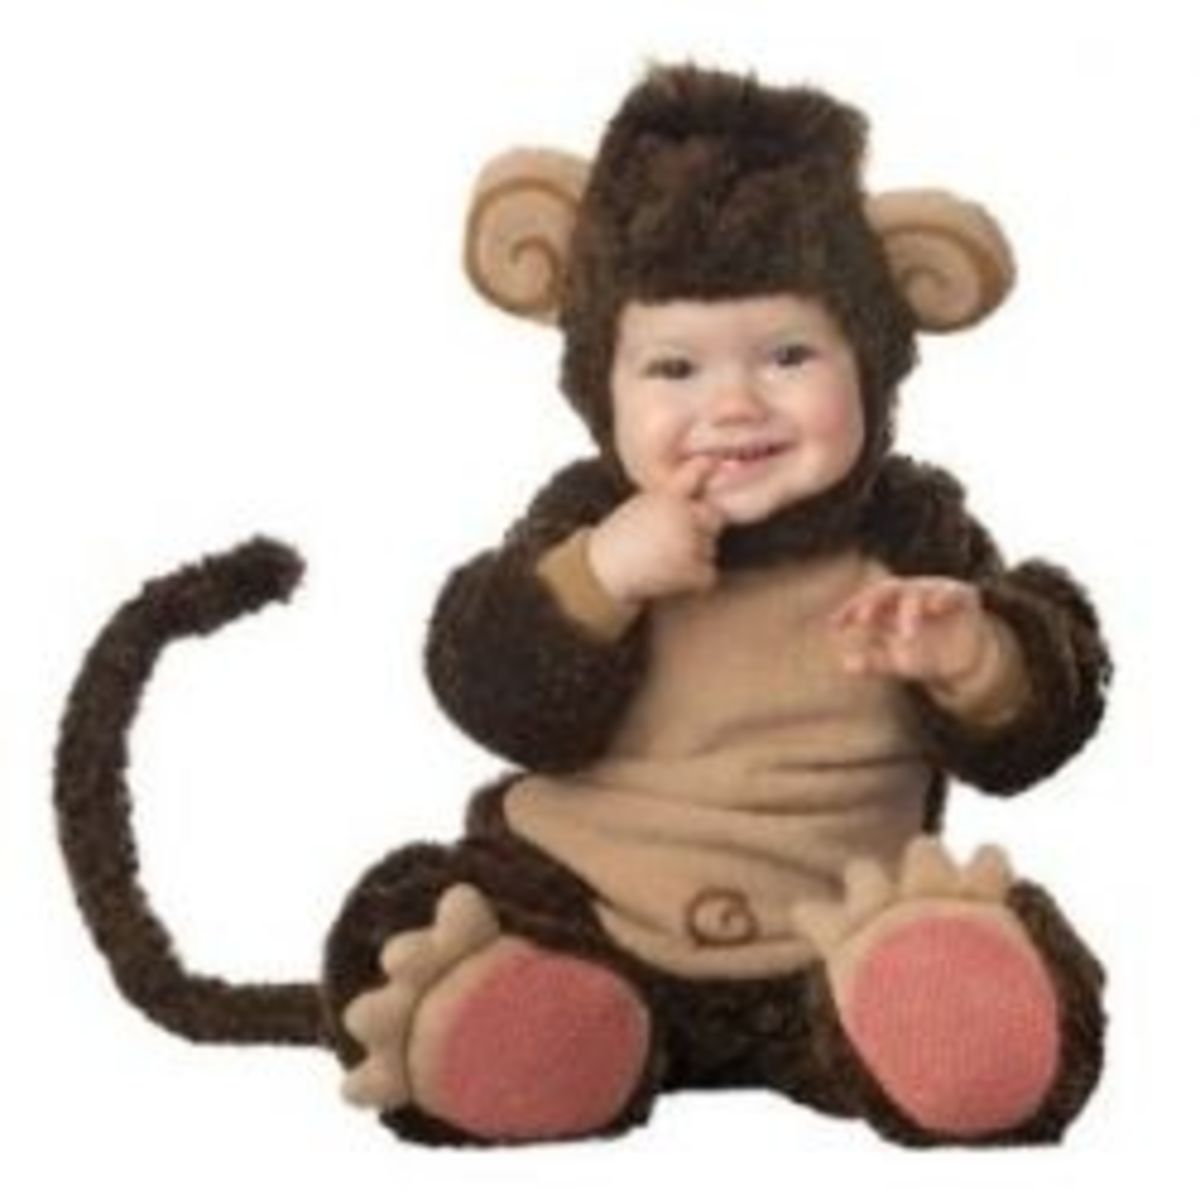 Funny Monkey Costumes for Babies